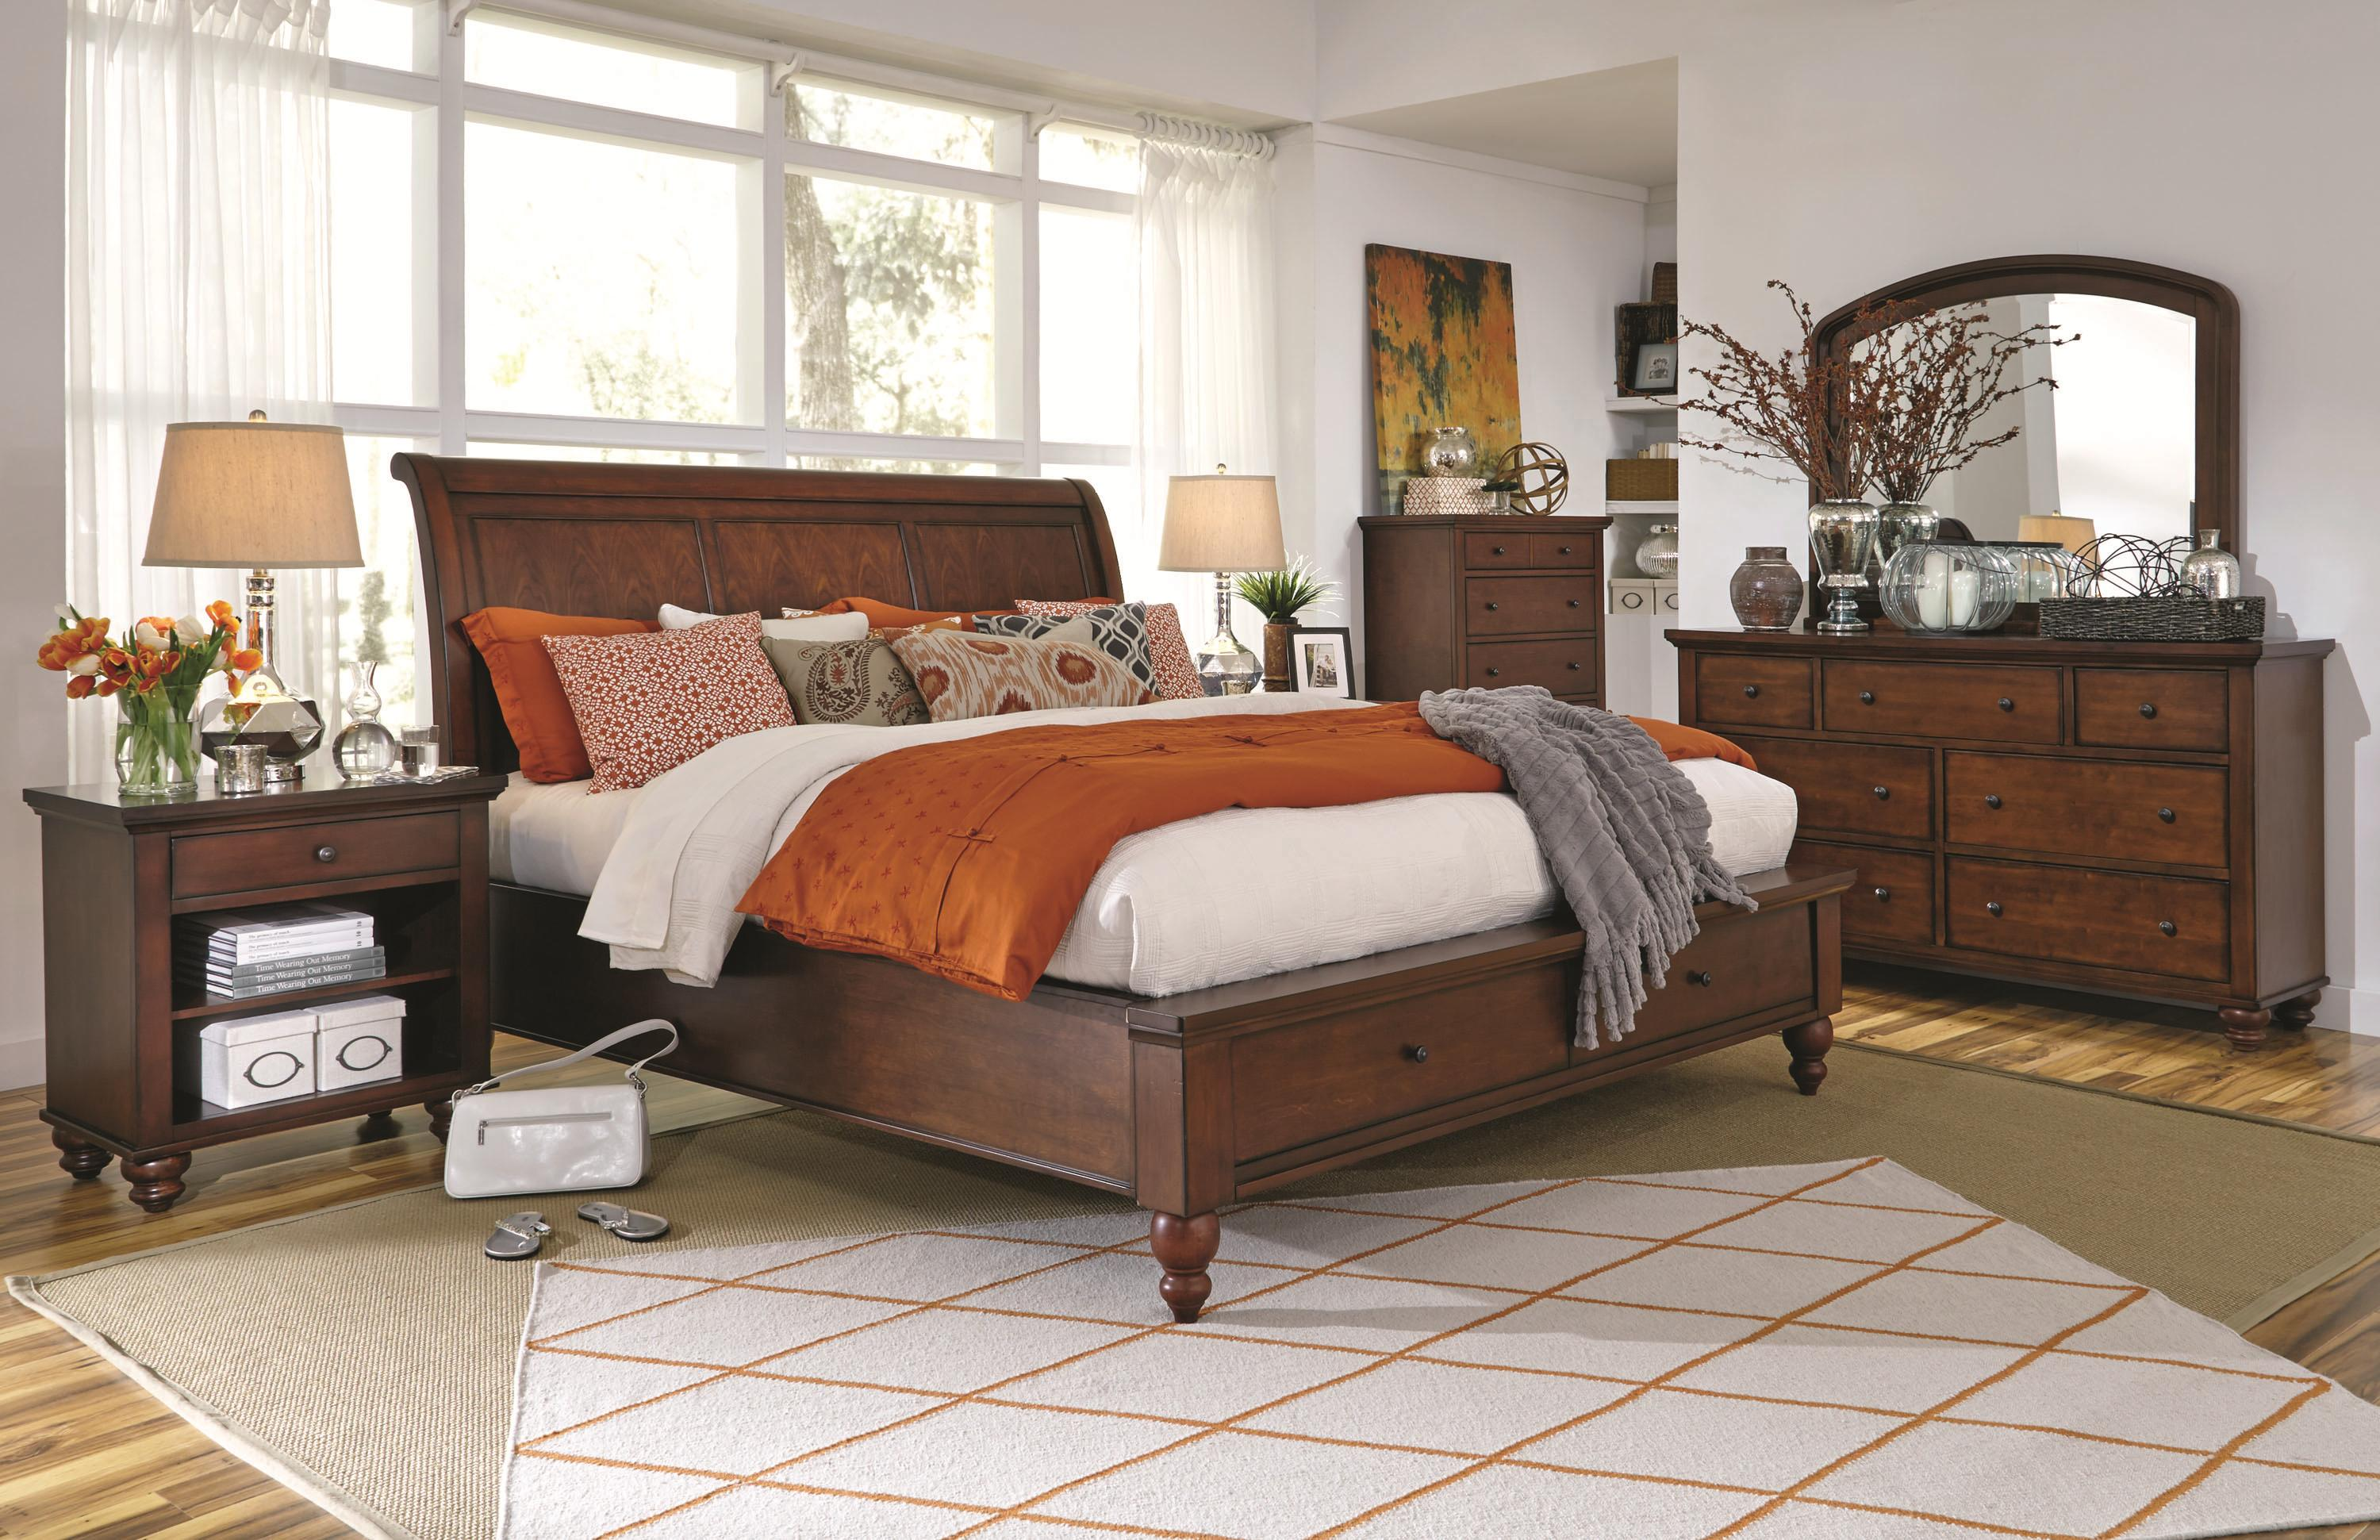 Queen Sleigh Bed With Storage Drawers And Usb Ports By